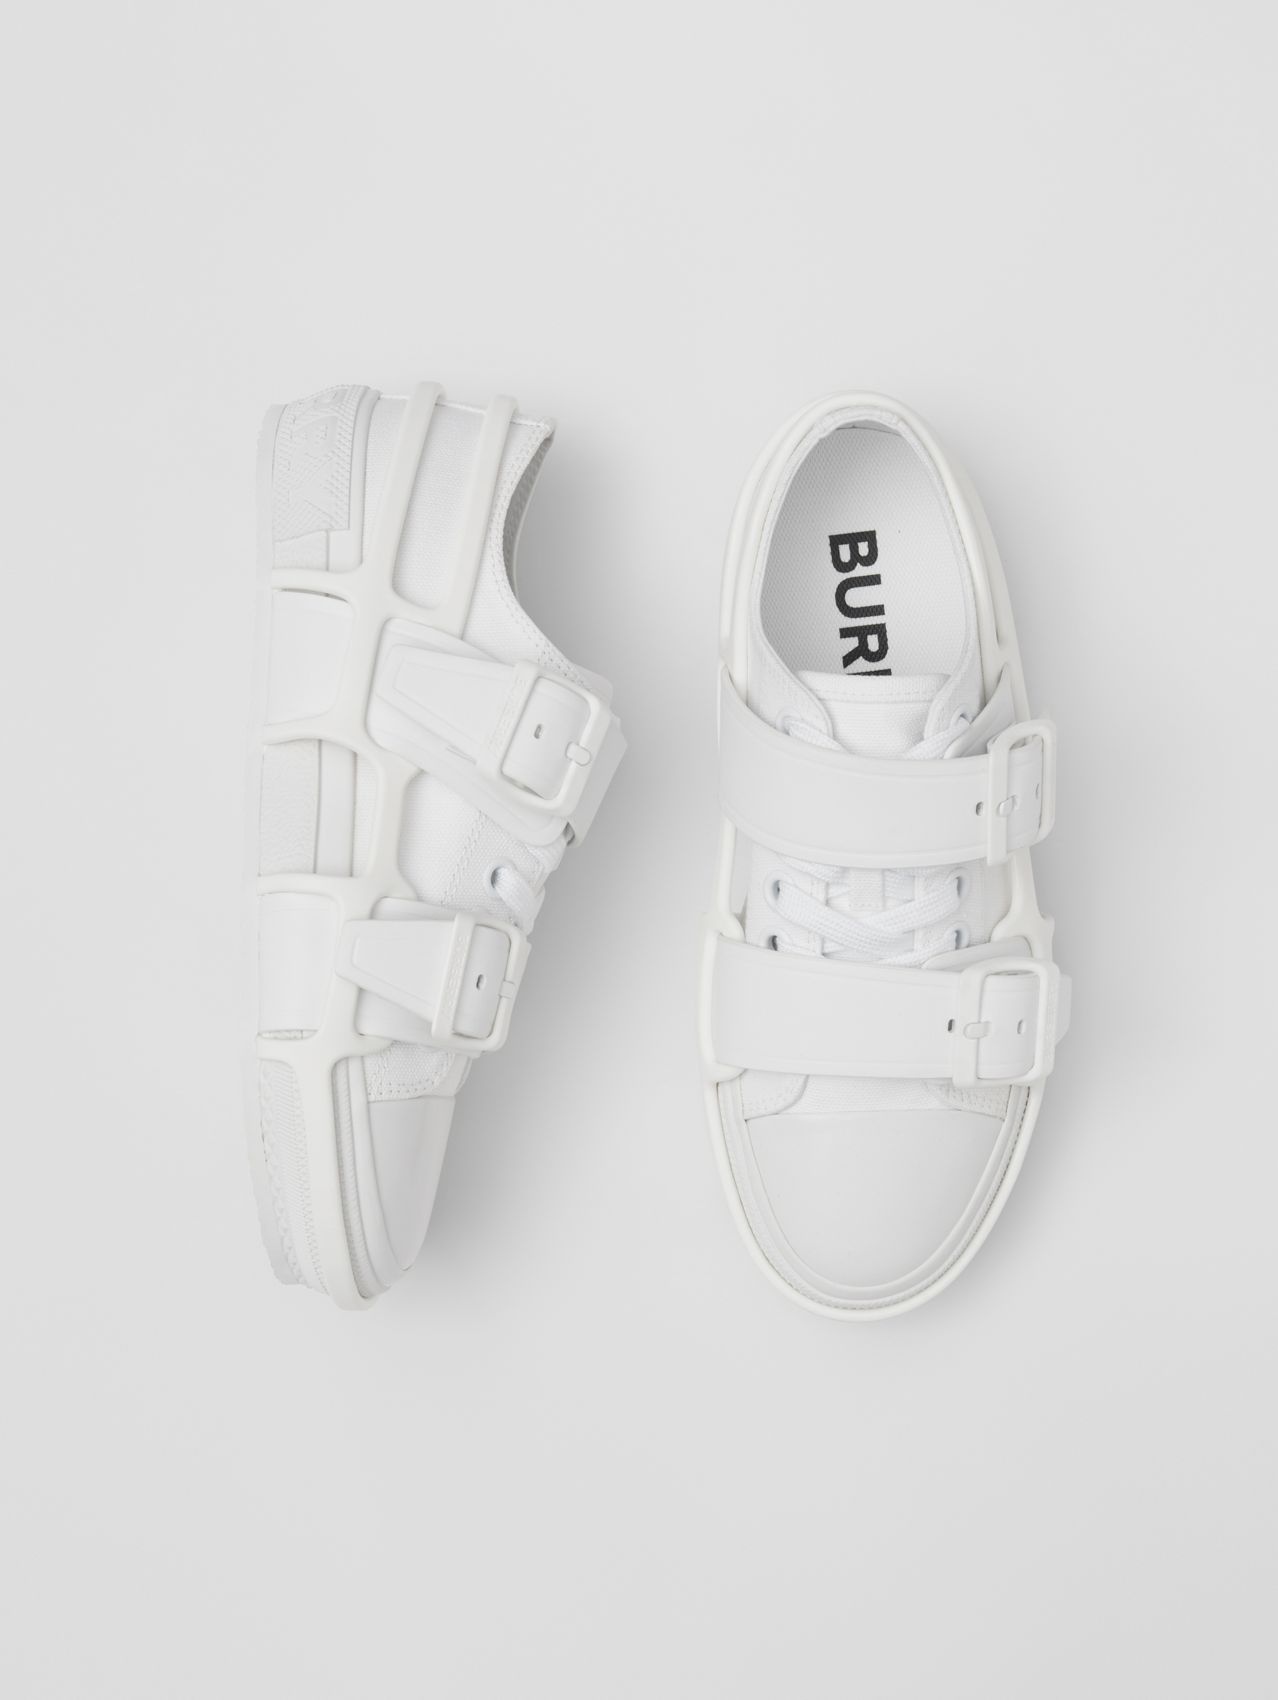 Cotton and Leather Webb Sneakers (White)